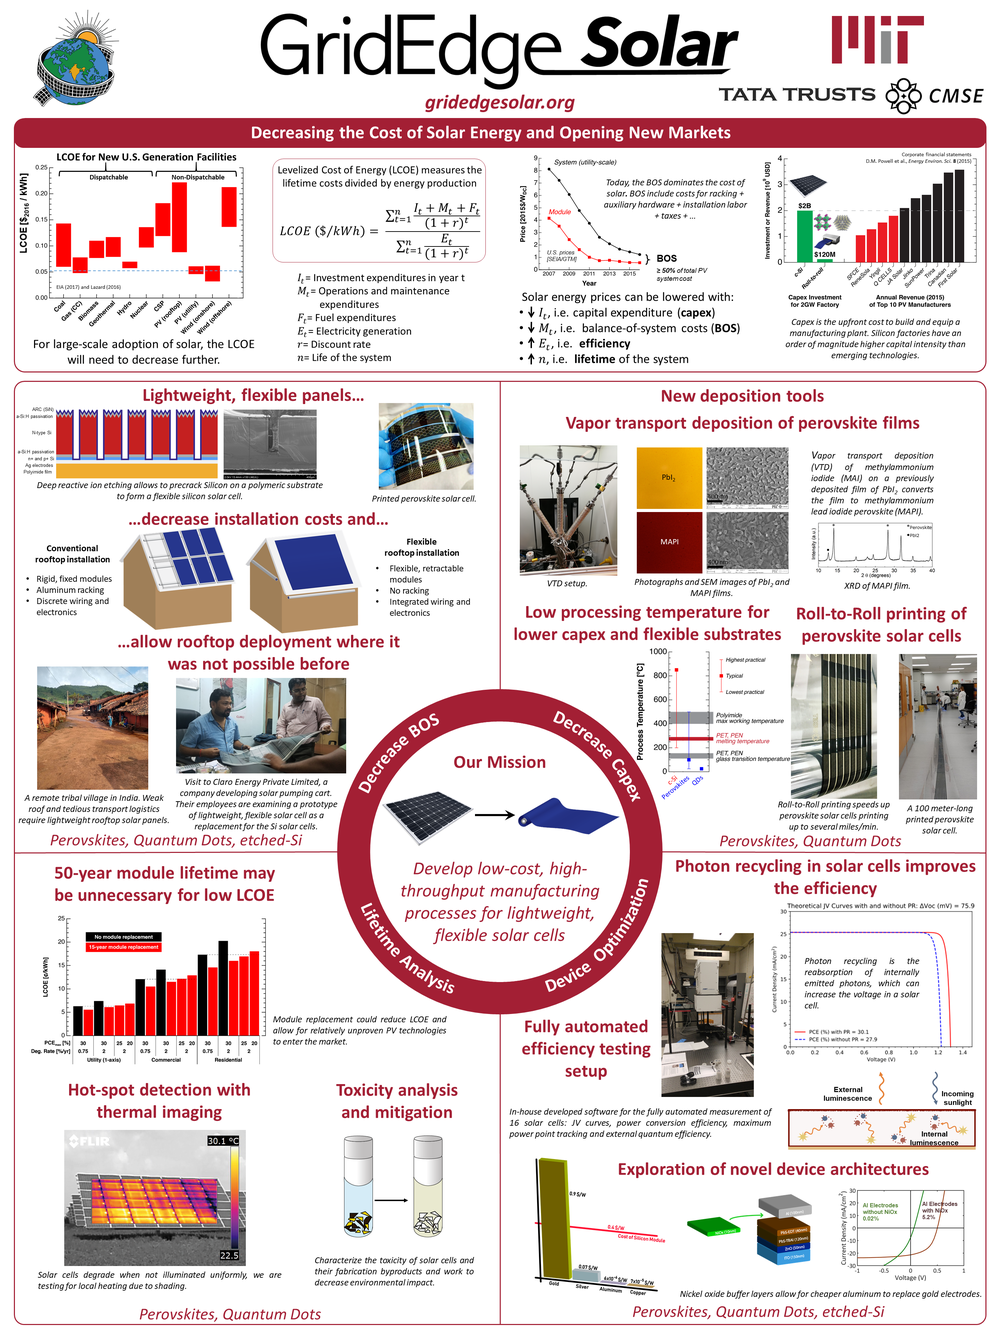 GridEdge Solar Presentation Poster   This poster presents GridEdge Solar's mission to decrease the cost of solar energy via four thrusts: decreasing the balance-of-system costs, decreasing the capital expenditure, optimizing the solar cells and improving the longevity of the panels.